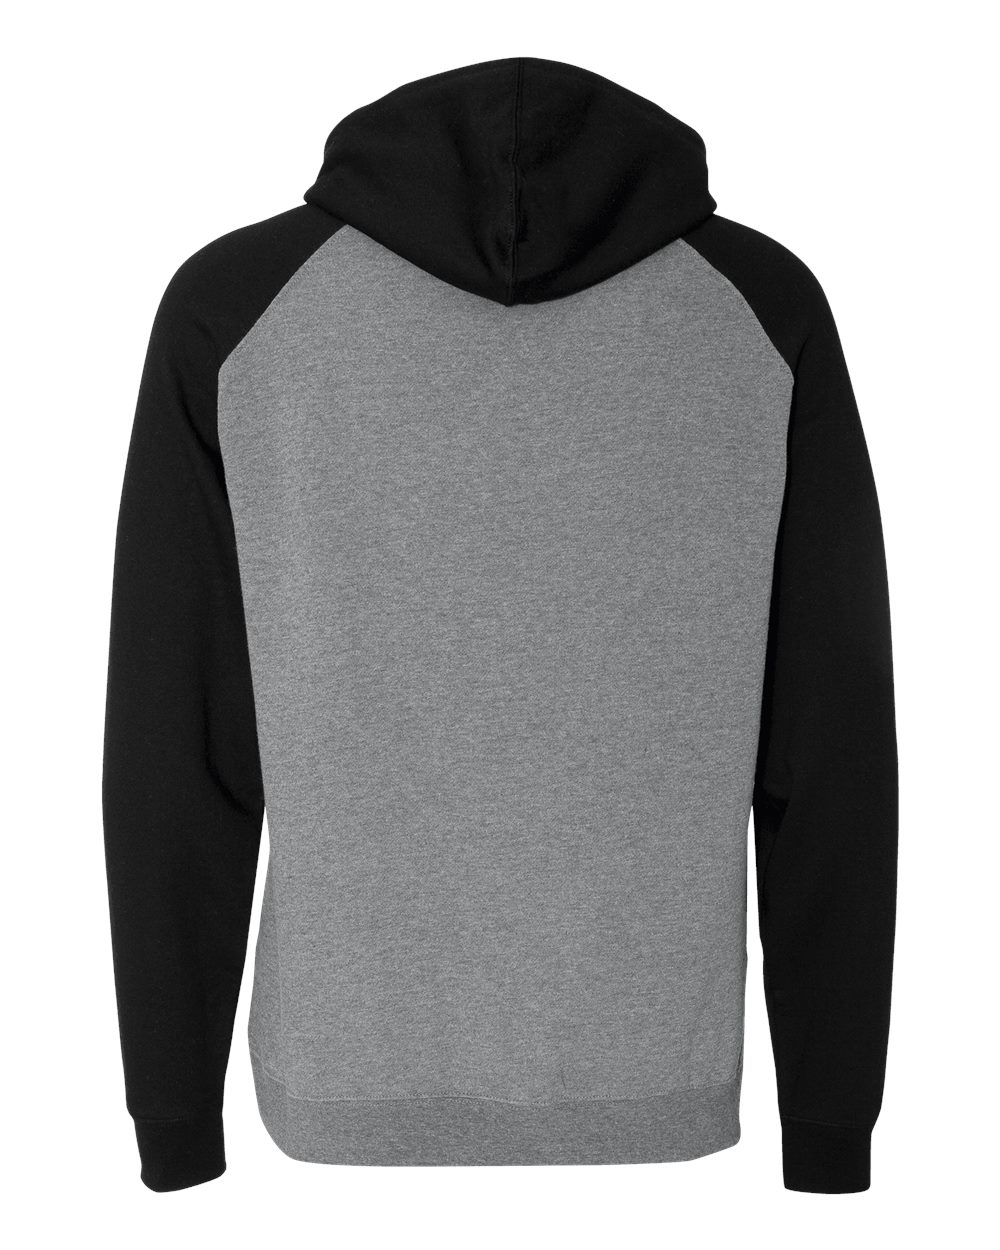 Independent-Trading-Co-Mens-Raglan-Hooded-Pullover-Sweatshirt-IND40RP-up-to-3XL miniature 19